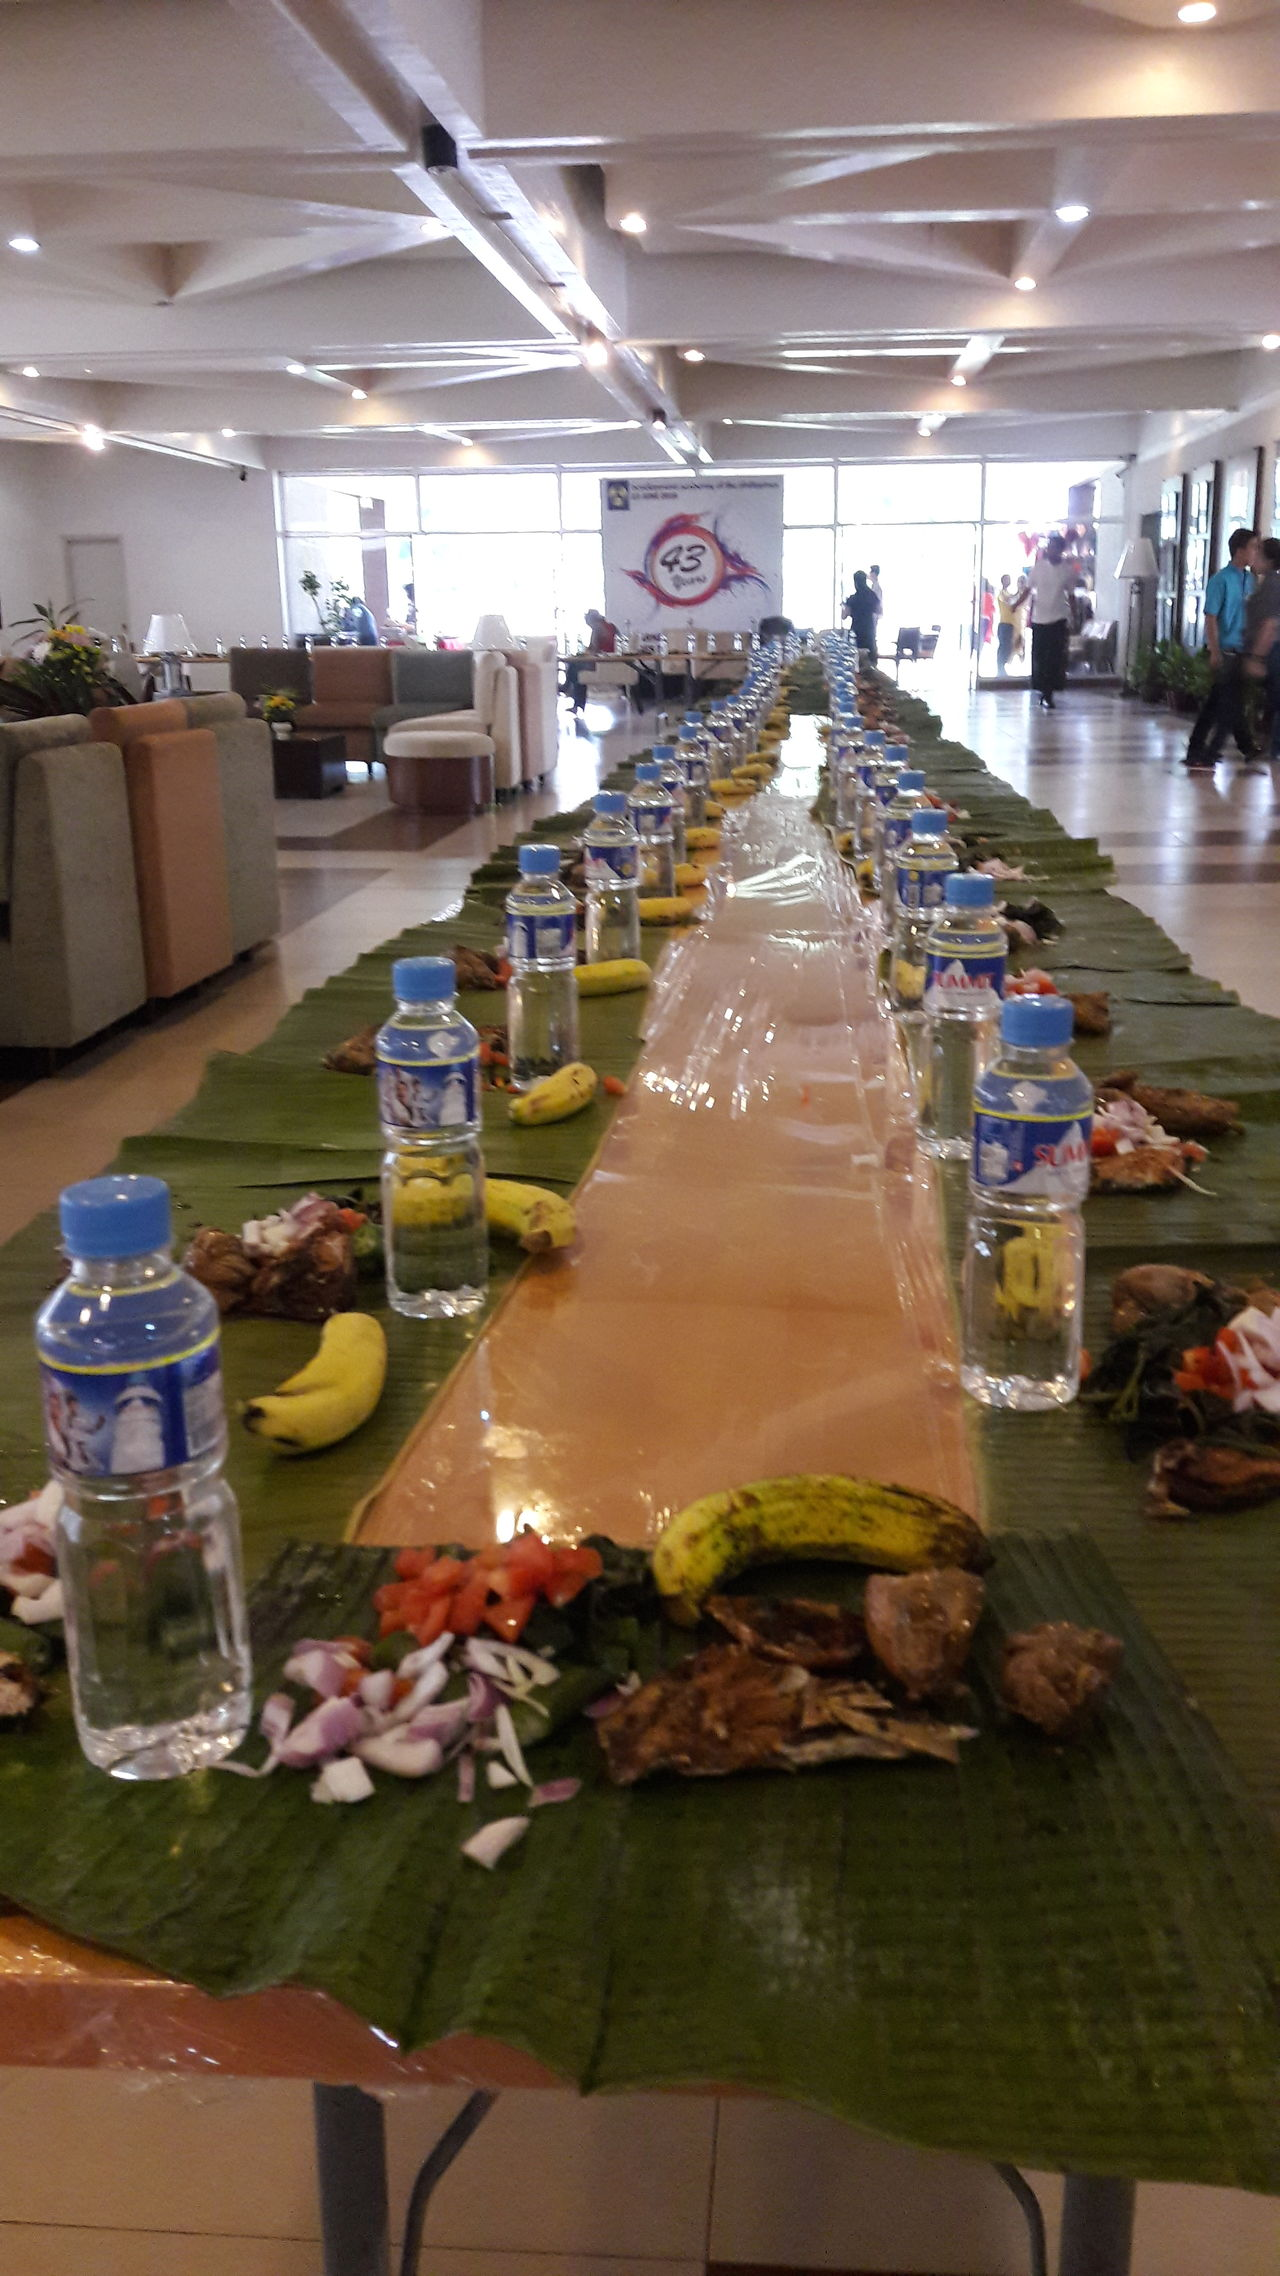 ShareTheMeal BoodleFight Dapcc Tagaytay Philippines... Food Longtable